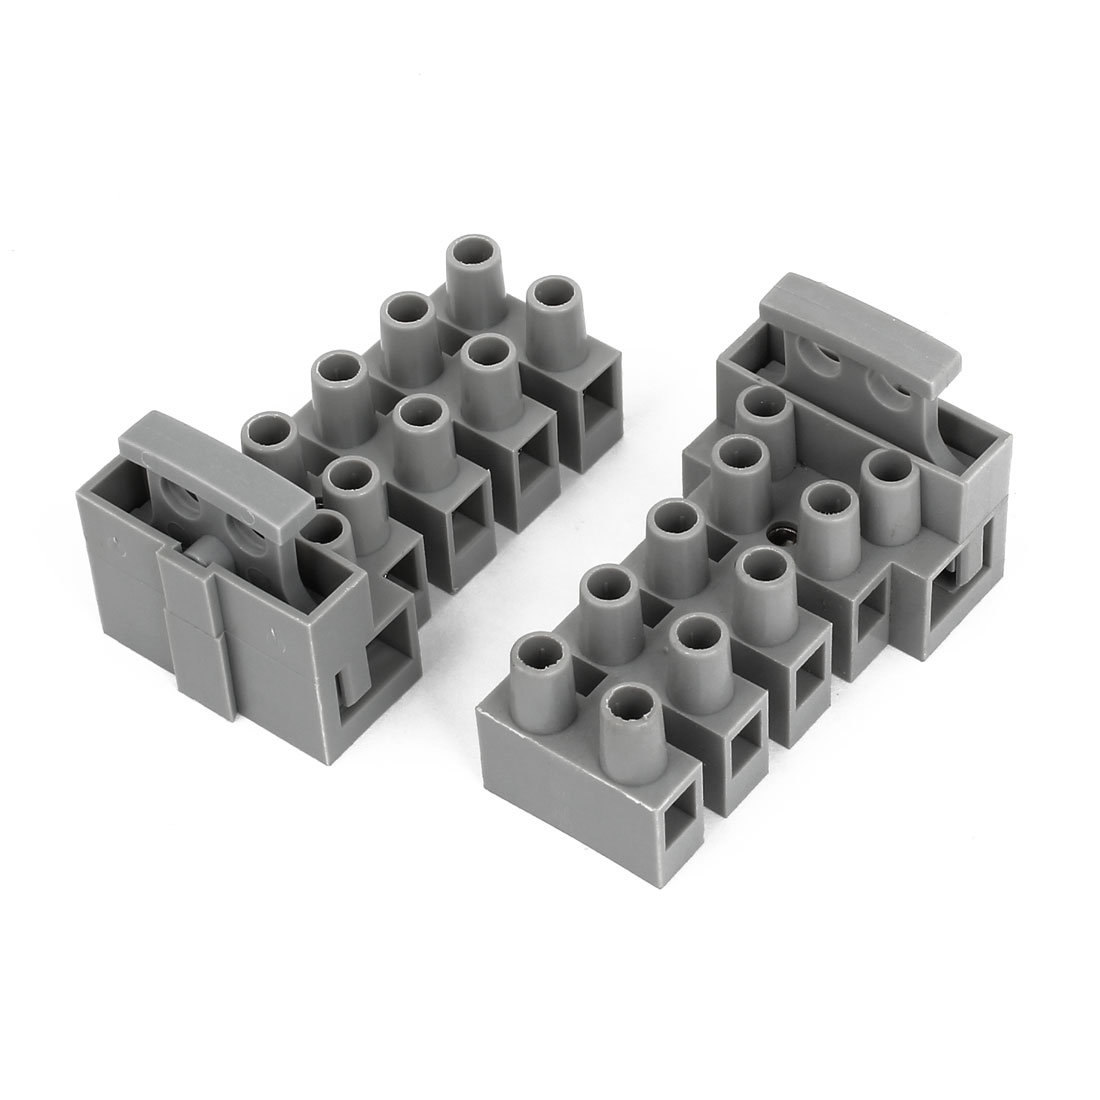 2pcs 450V 10A 2 Rows 5 Position Terminal Block Barrier Strip Cable Connector w Fuse Holder